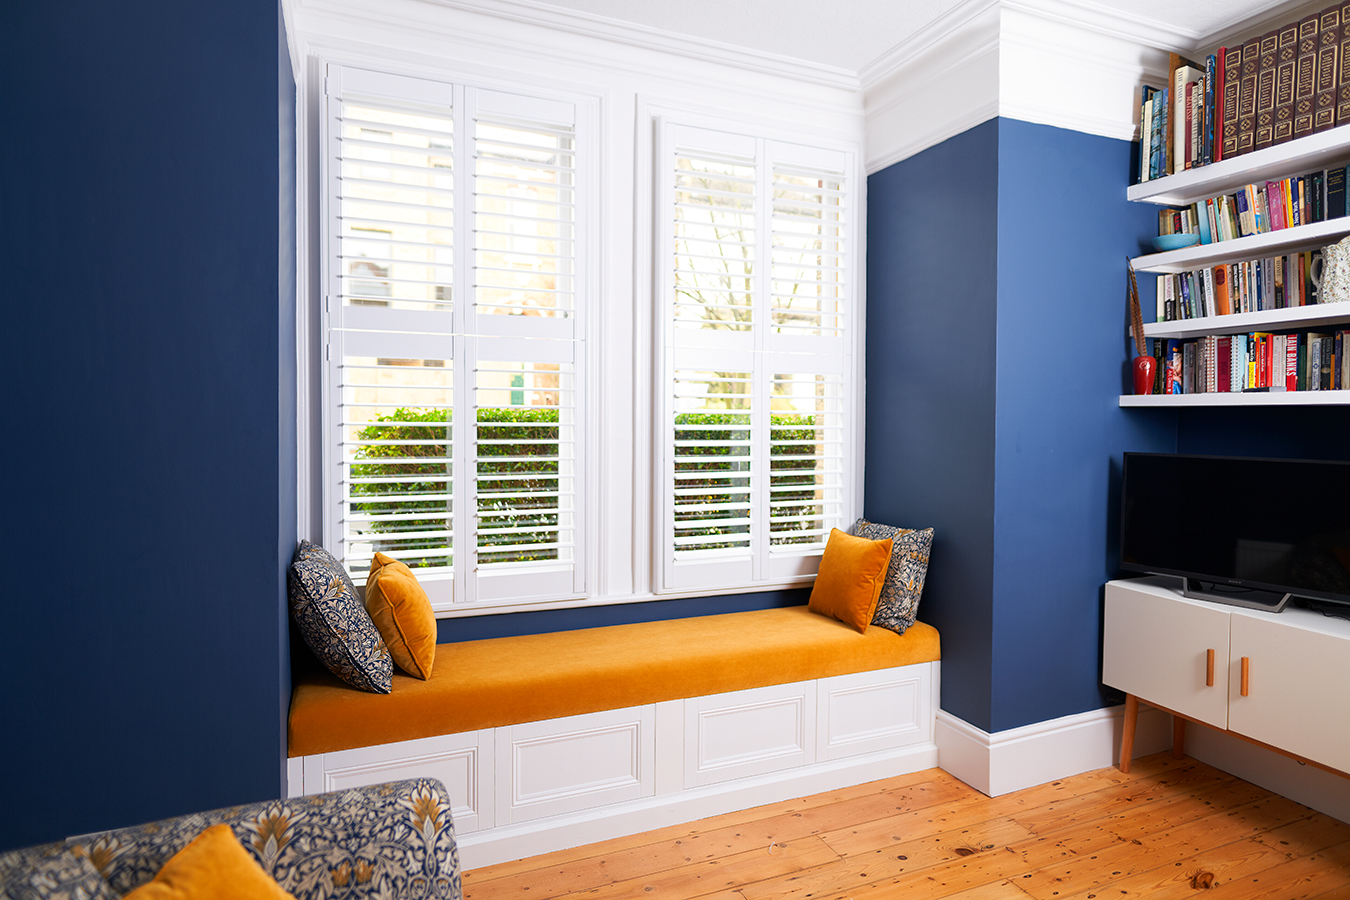 A blue alcove with orange bench